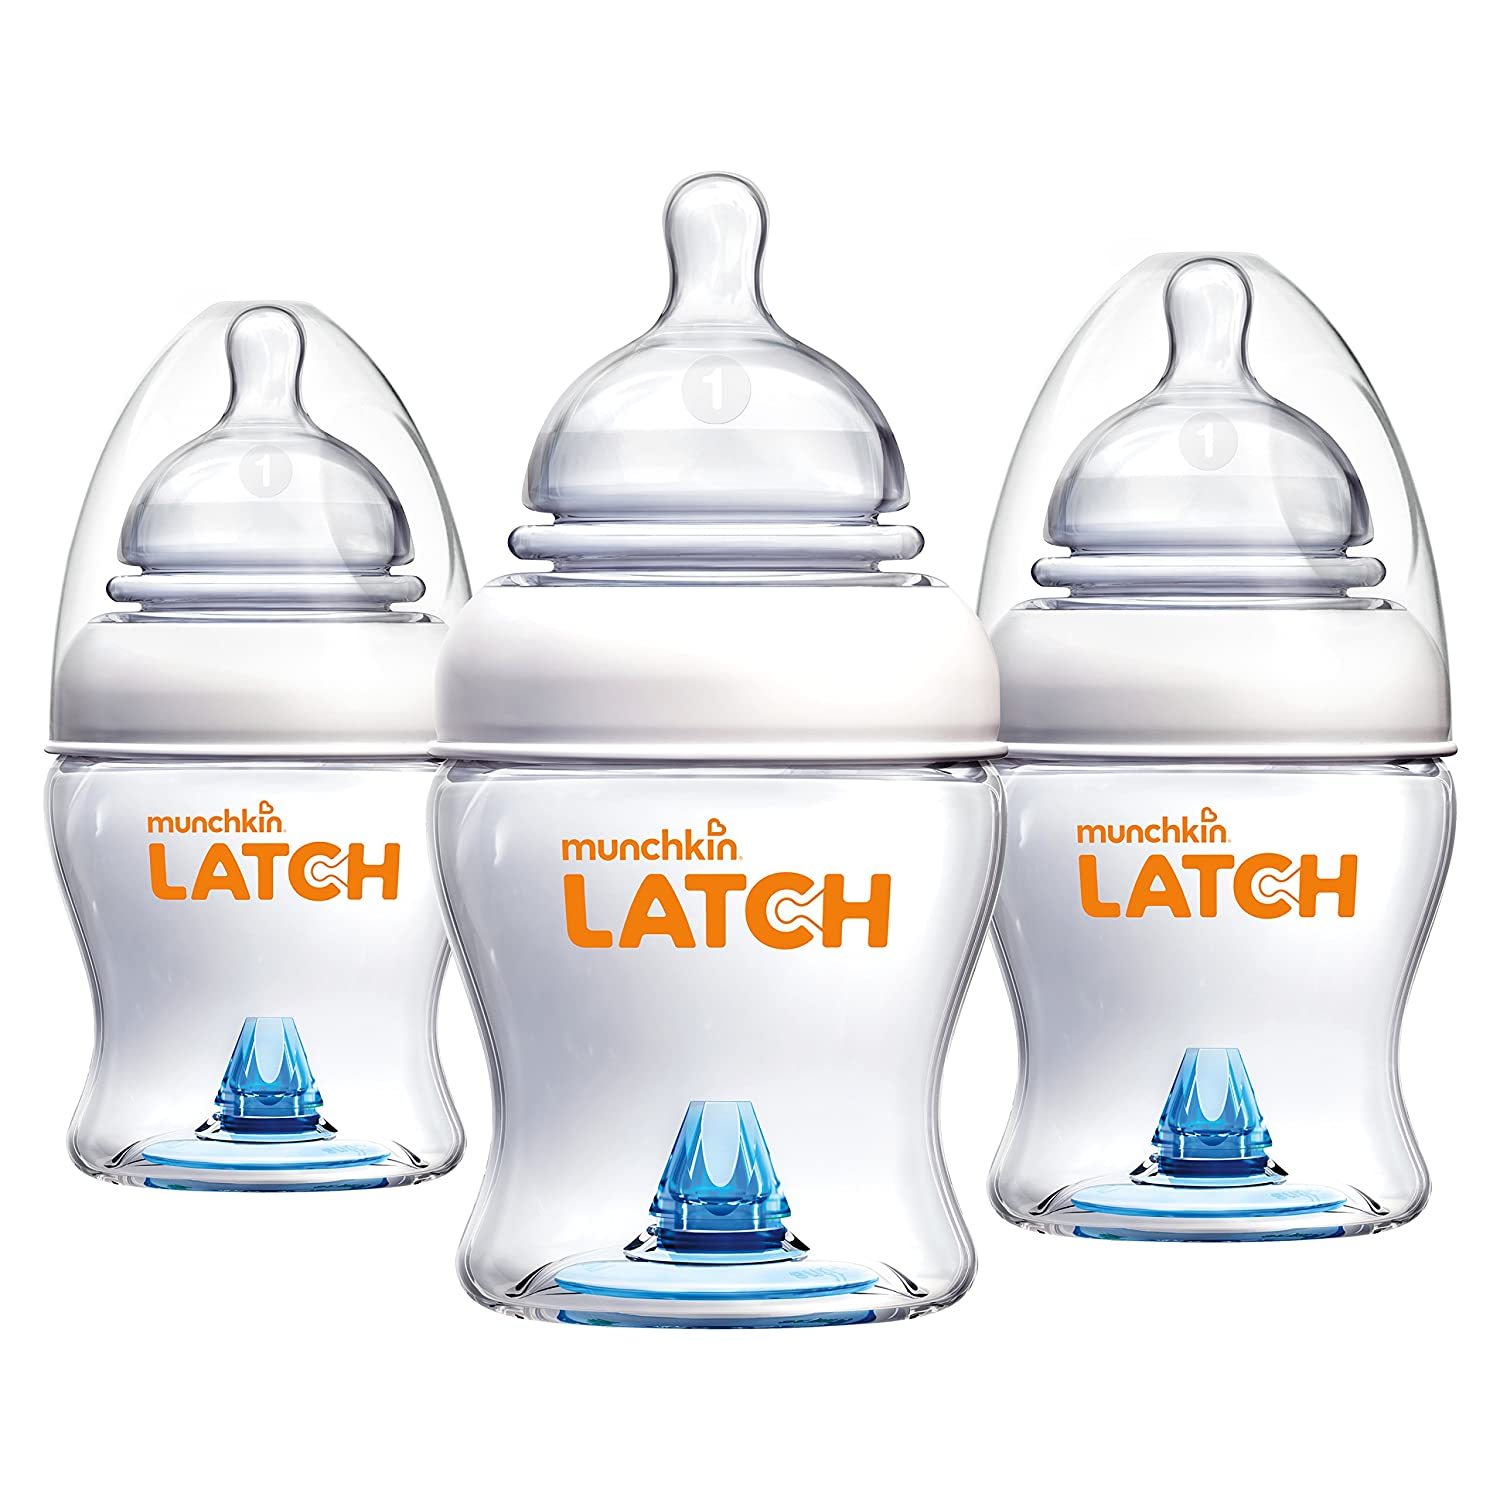 Munchkin Latch Anti-Colic Bottle for Breastfed Baby